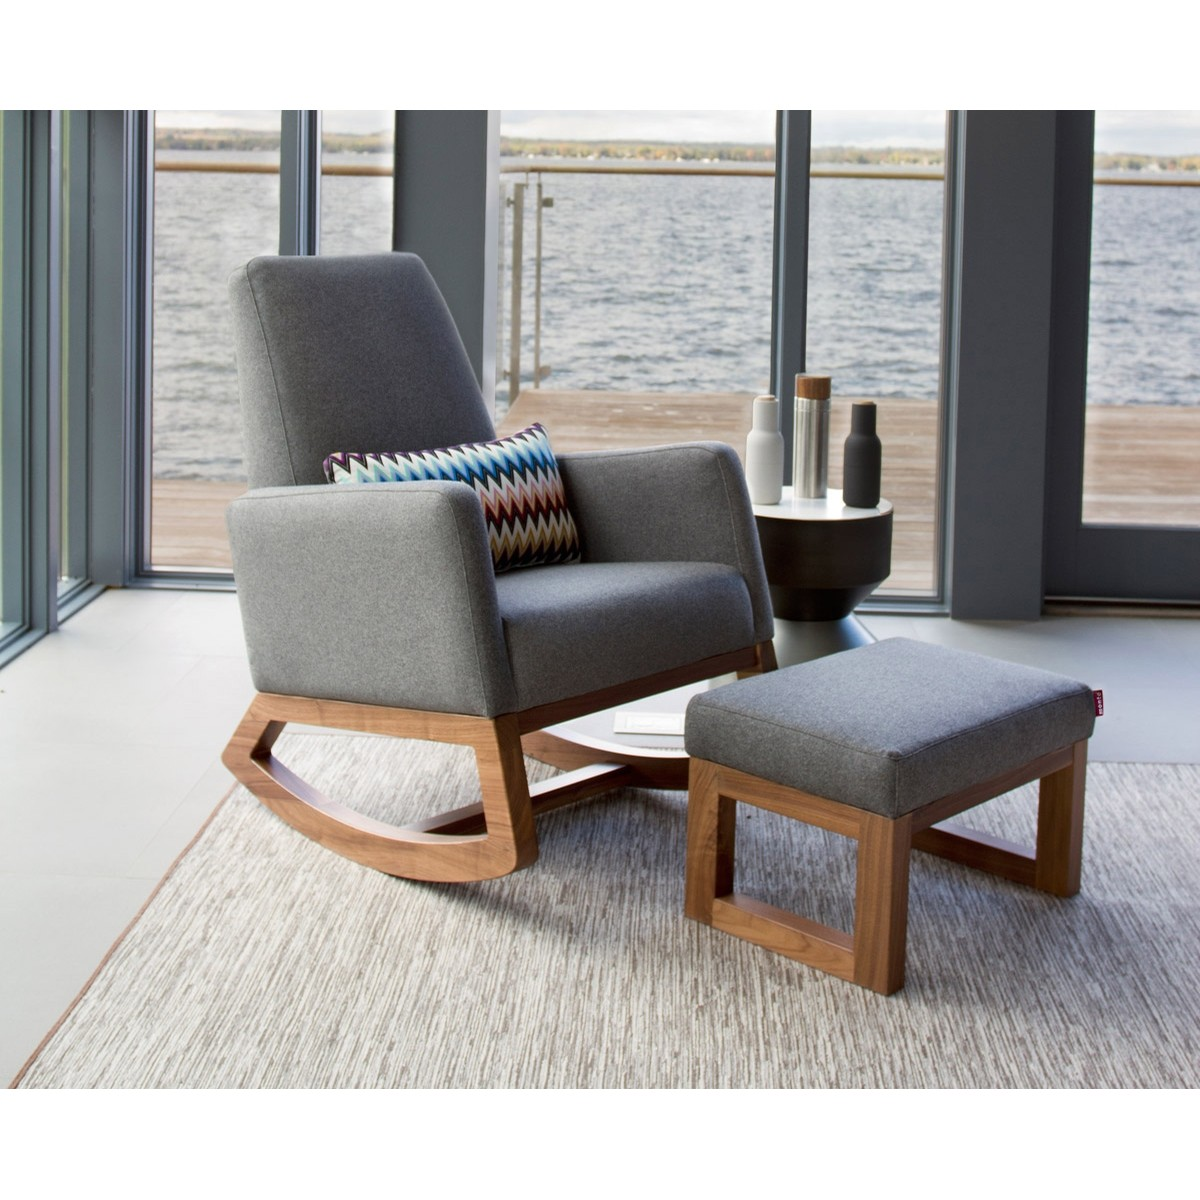 Monte Design Joya Rocker - Walnut Base